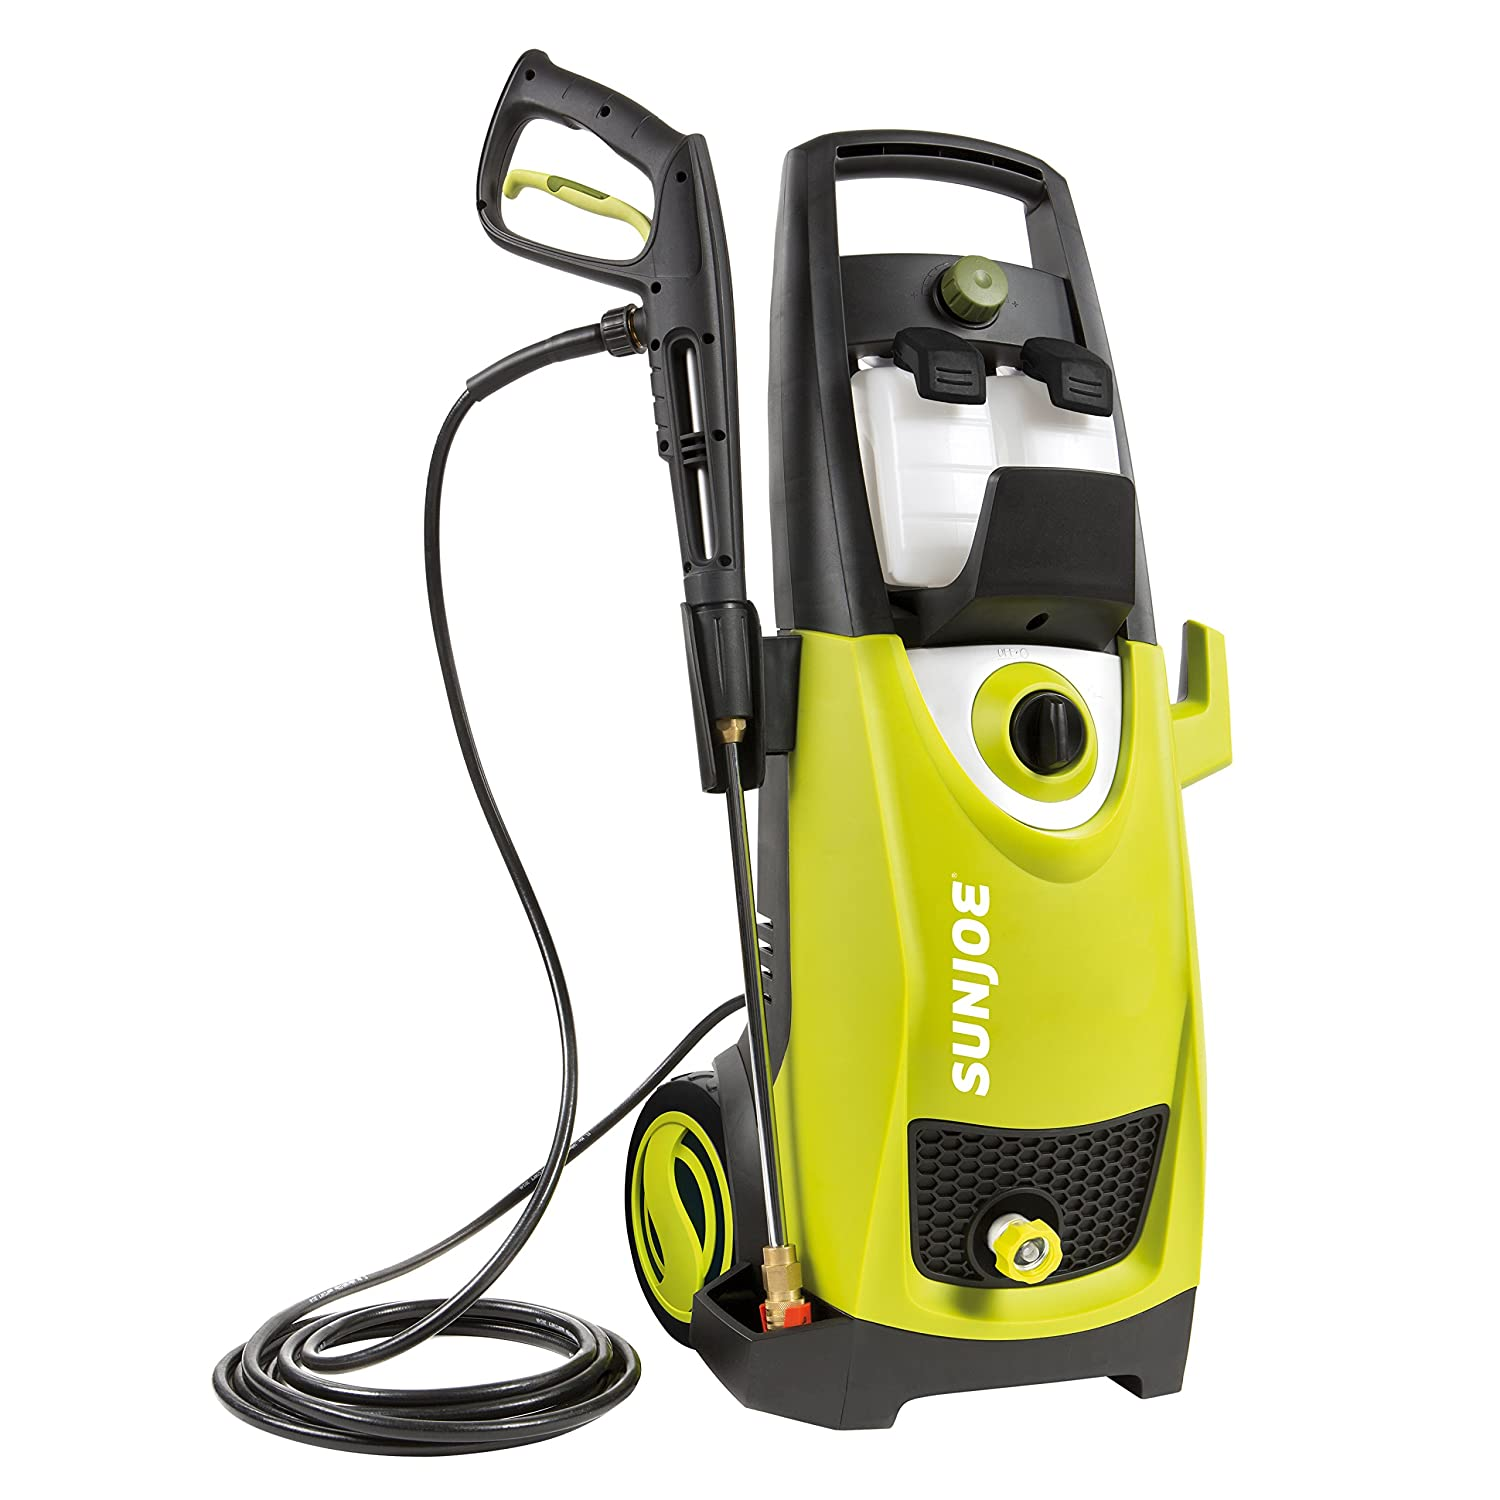 The <strong>Sun Joe SPX3000 - Best 2000 psi Electric Pressure Washer for the money</strong>